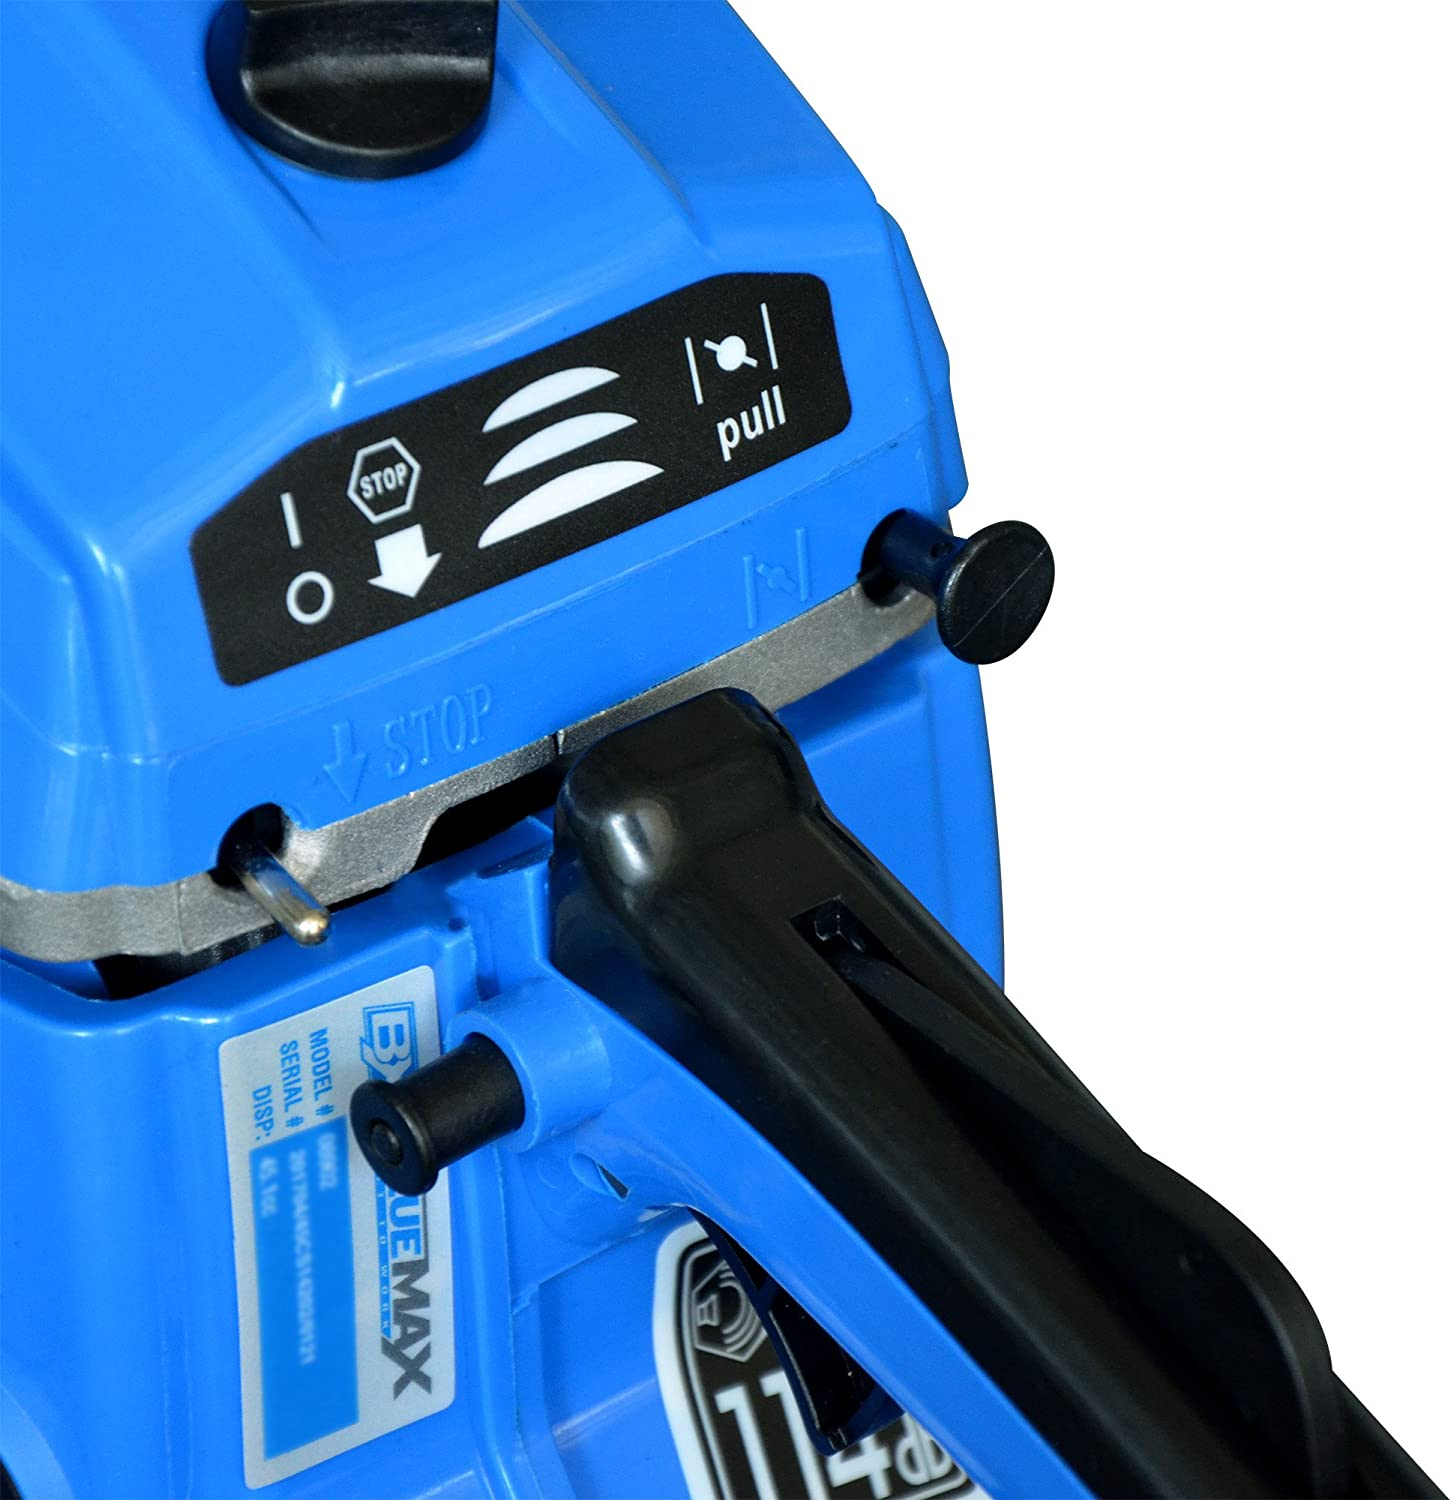 Blue Max 6595 Chainsaws product image 4